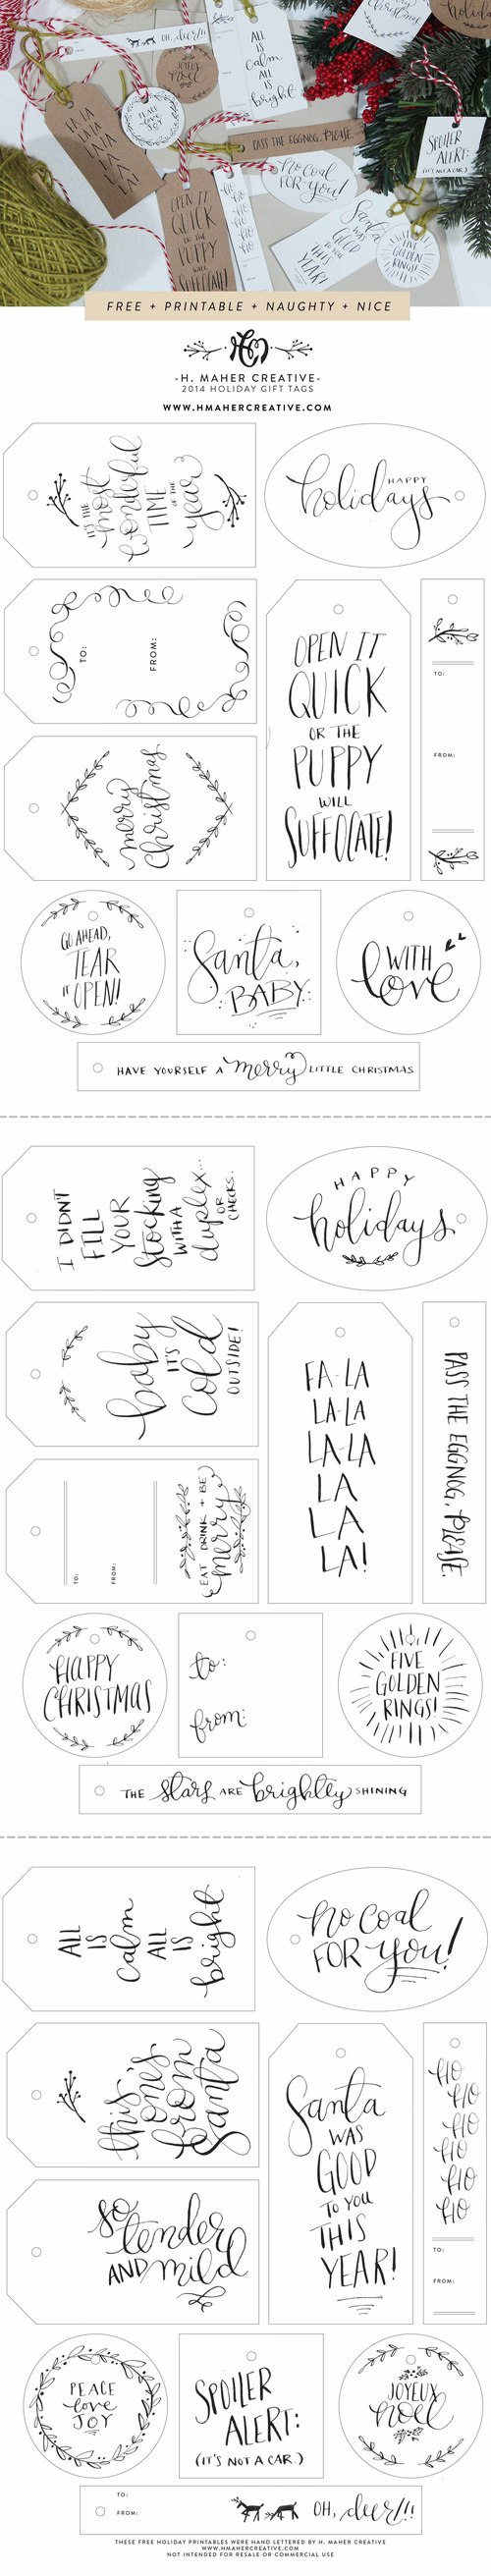 Nov  Naughty  Nice   Free HandLettered Holiday Gift Tag